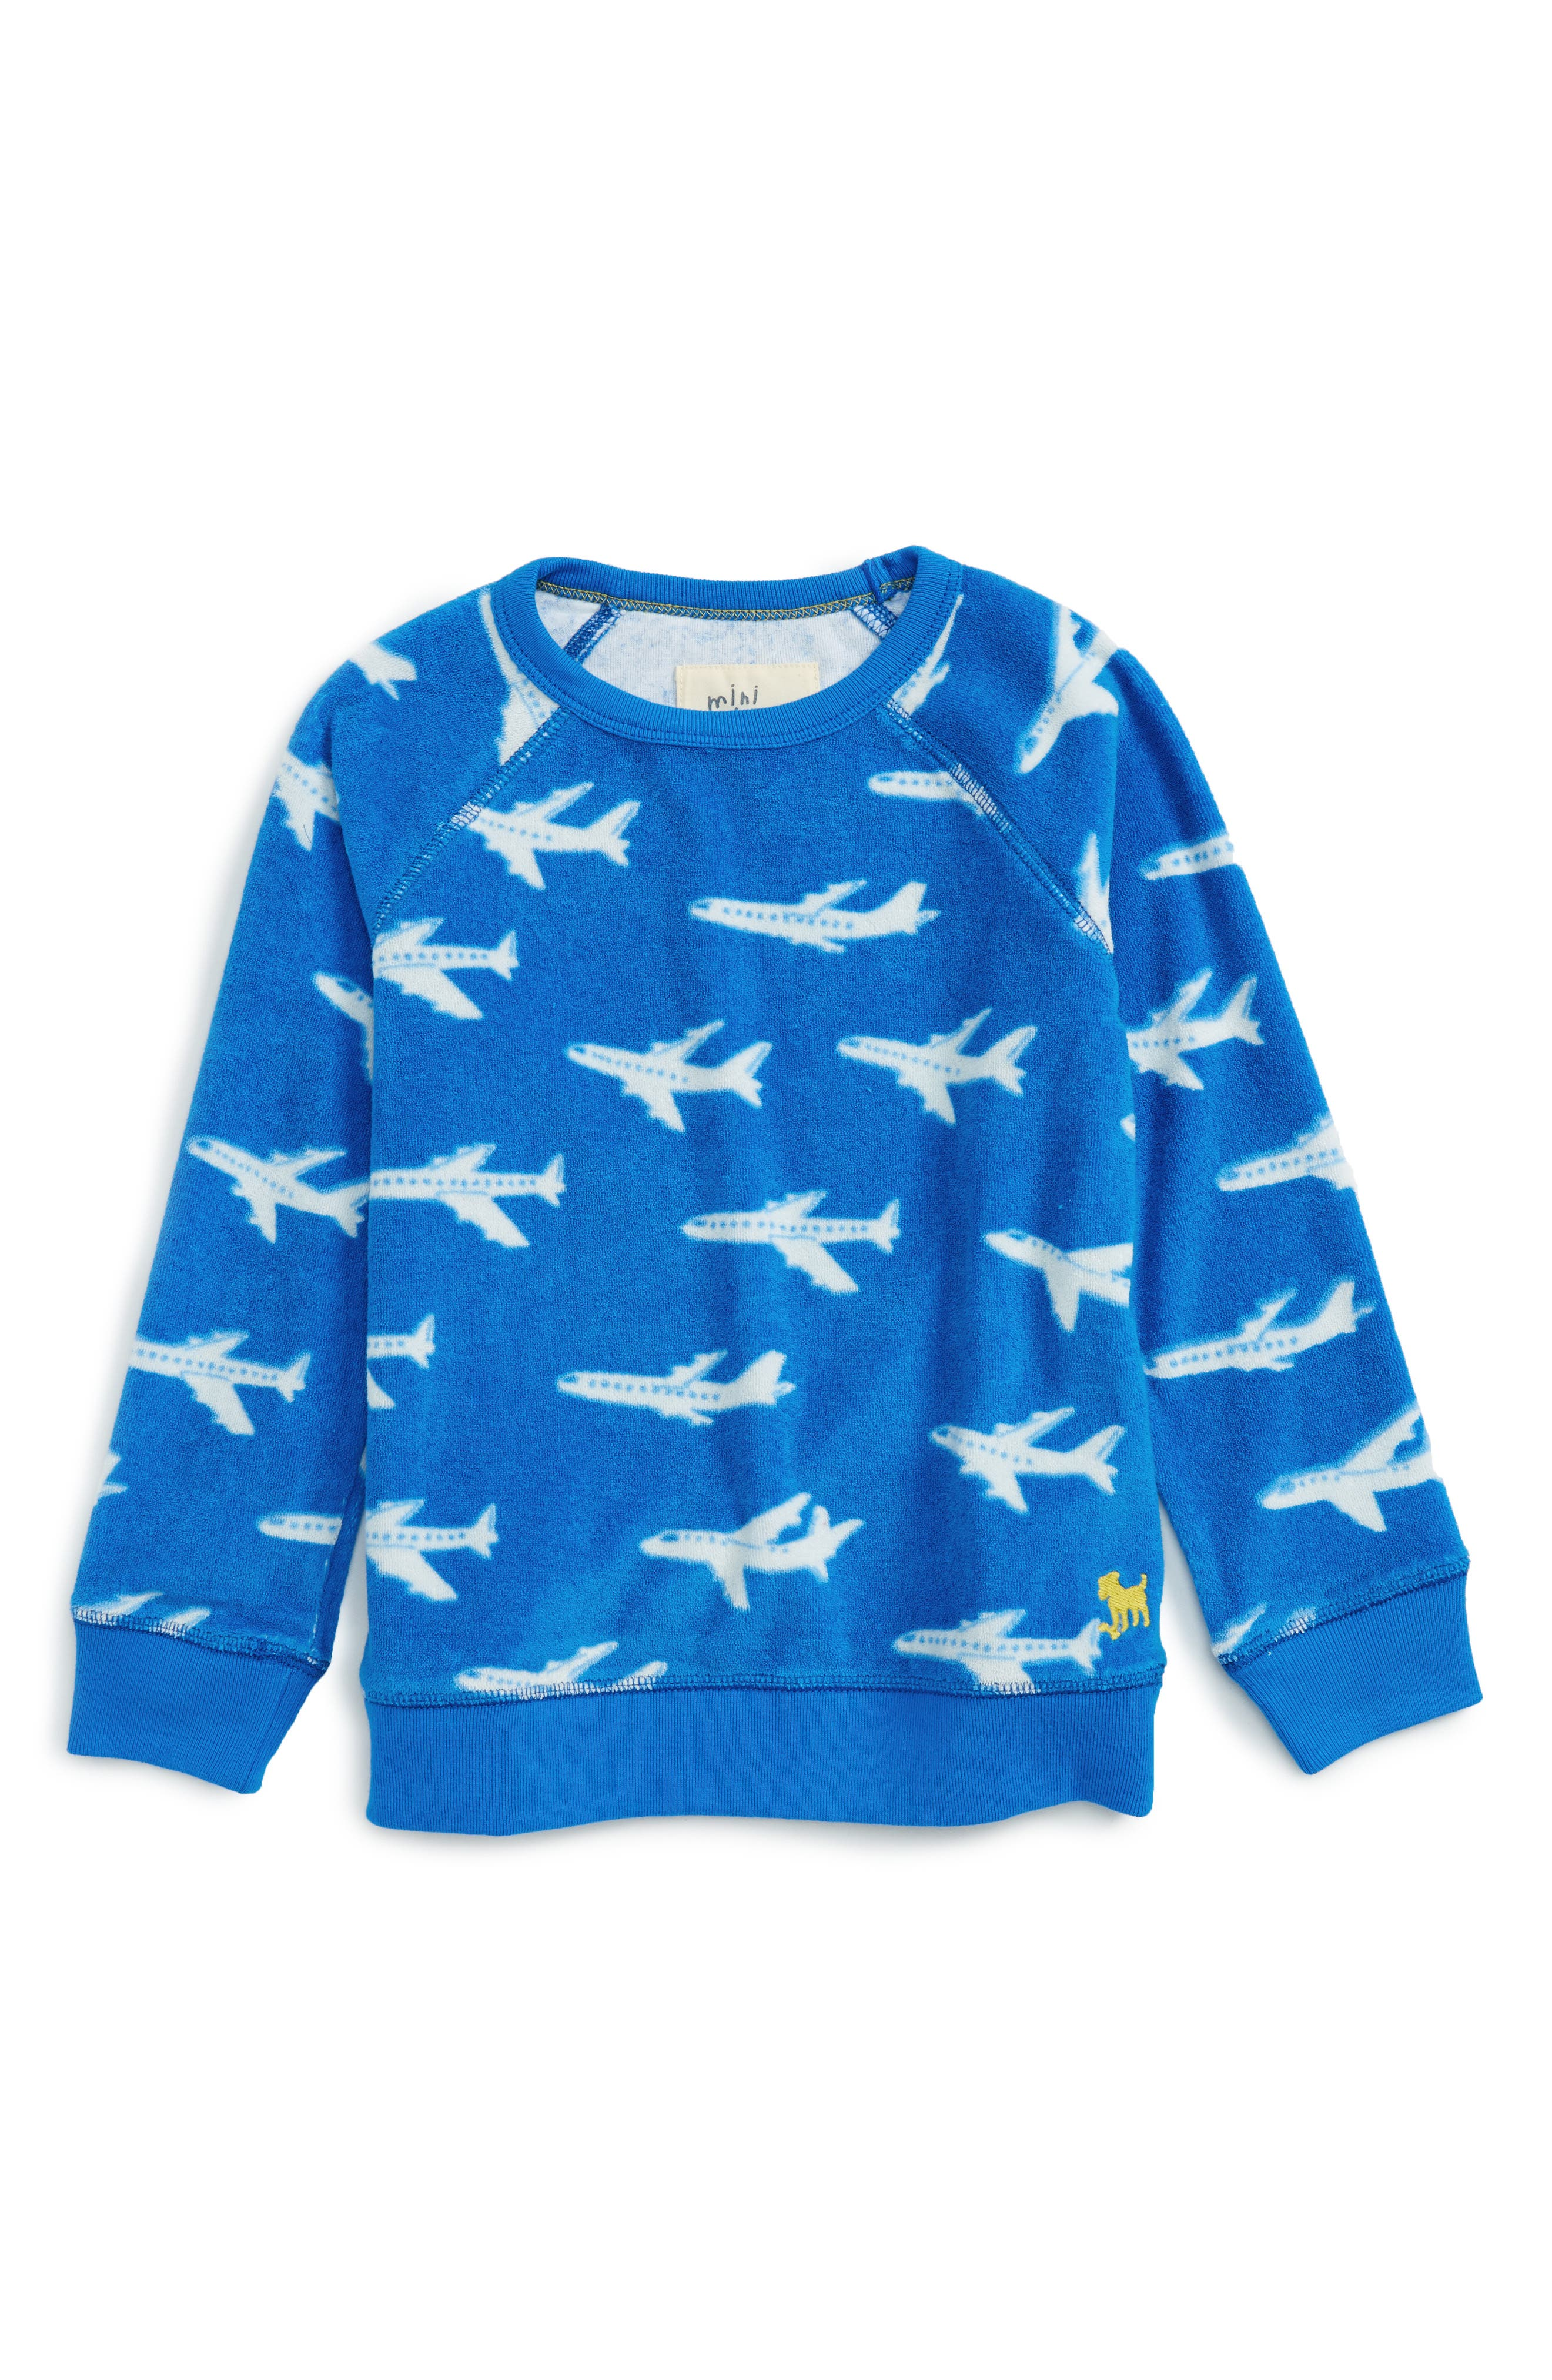 Alternate Image 1 Selected - Mini Boden Towelling Sweatshirt (Toddler Boys, Little Boys & Big Boys)